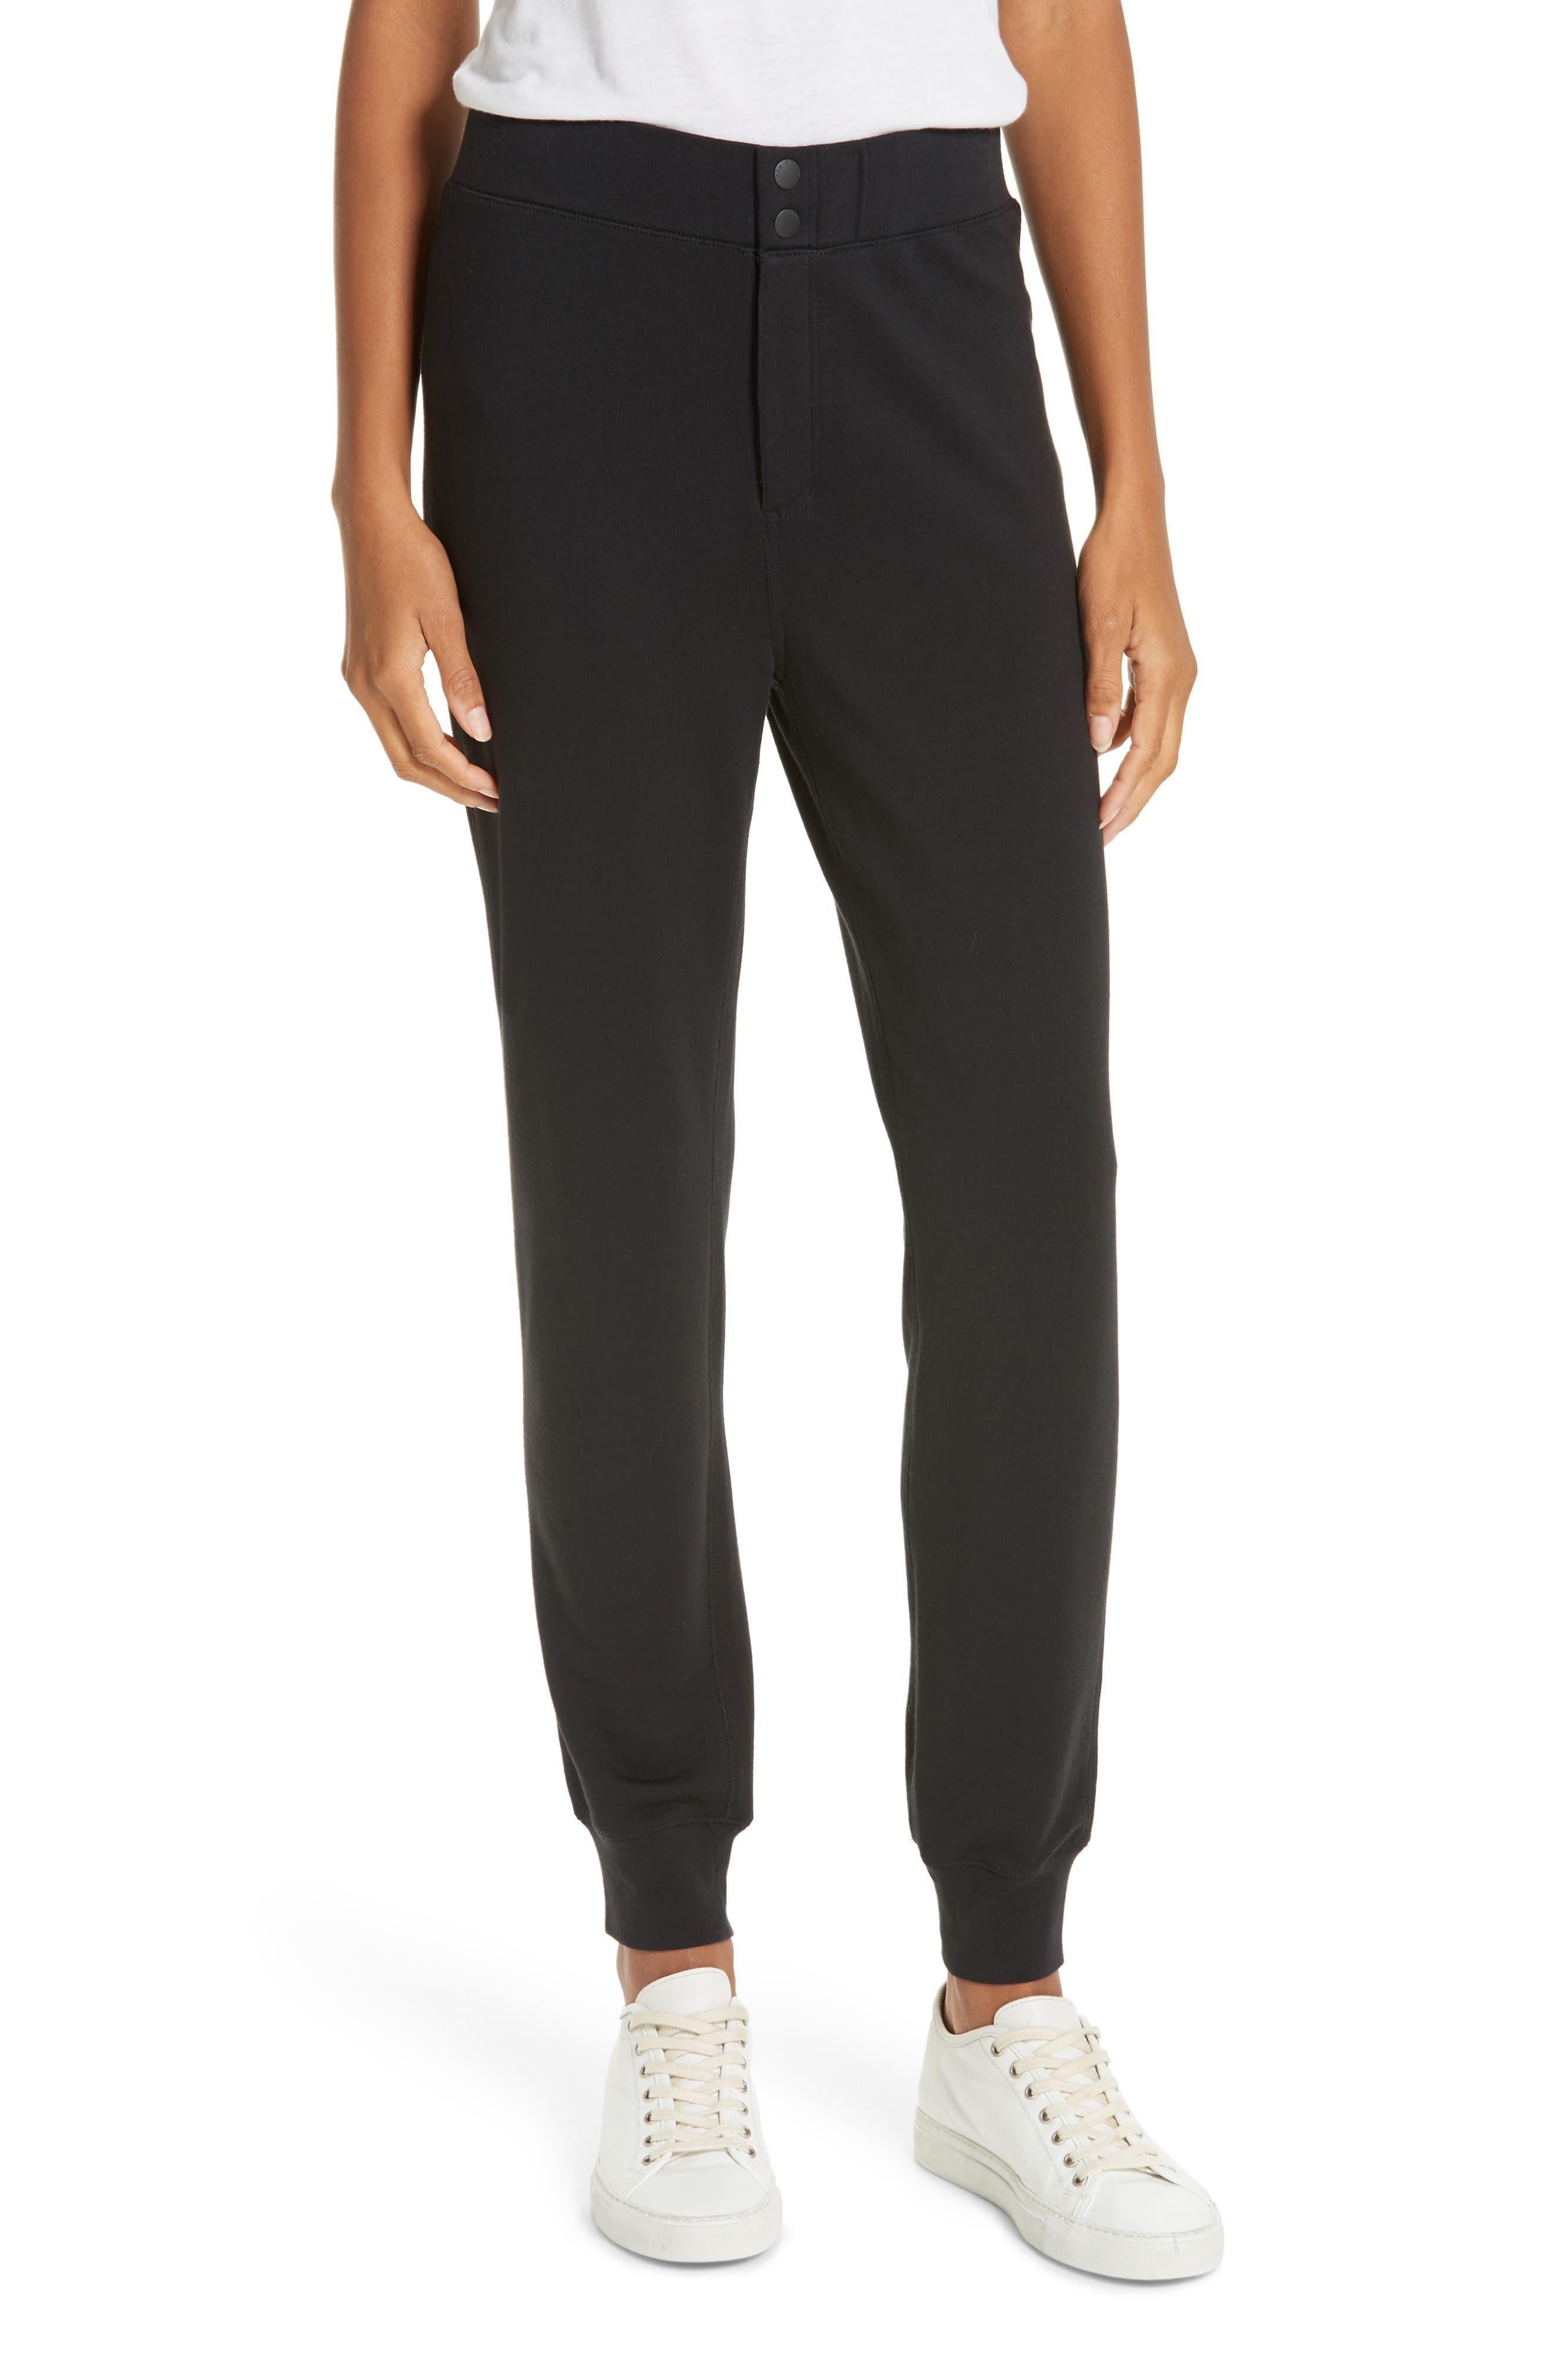 Women's Rag & Bone/jean Athletic Sweatpants